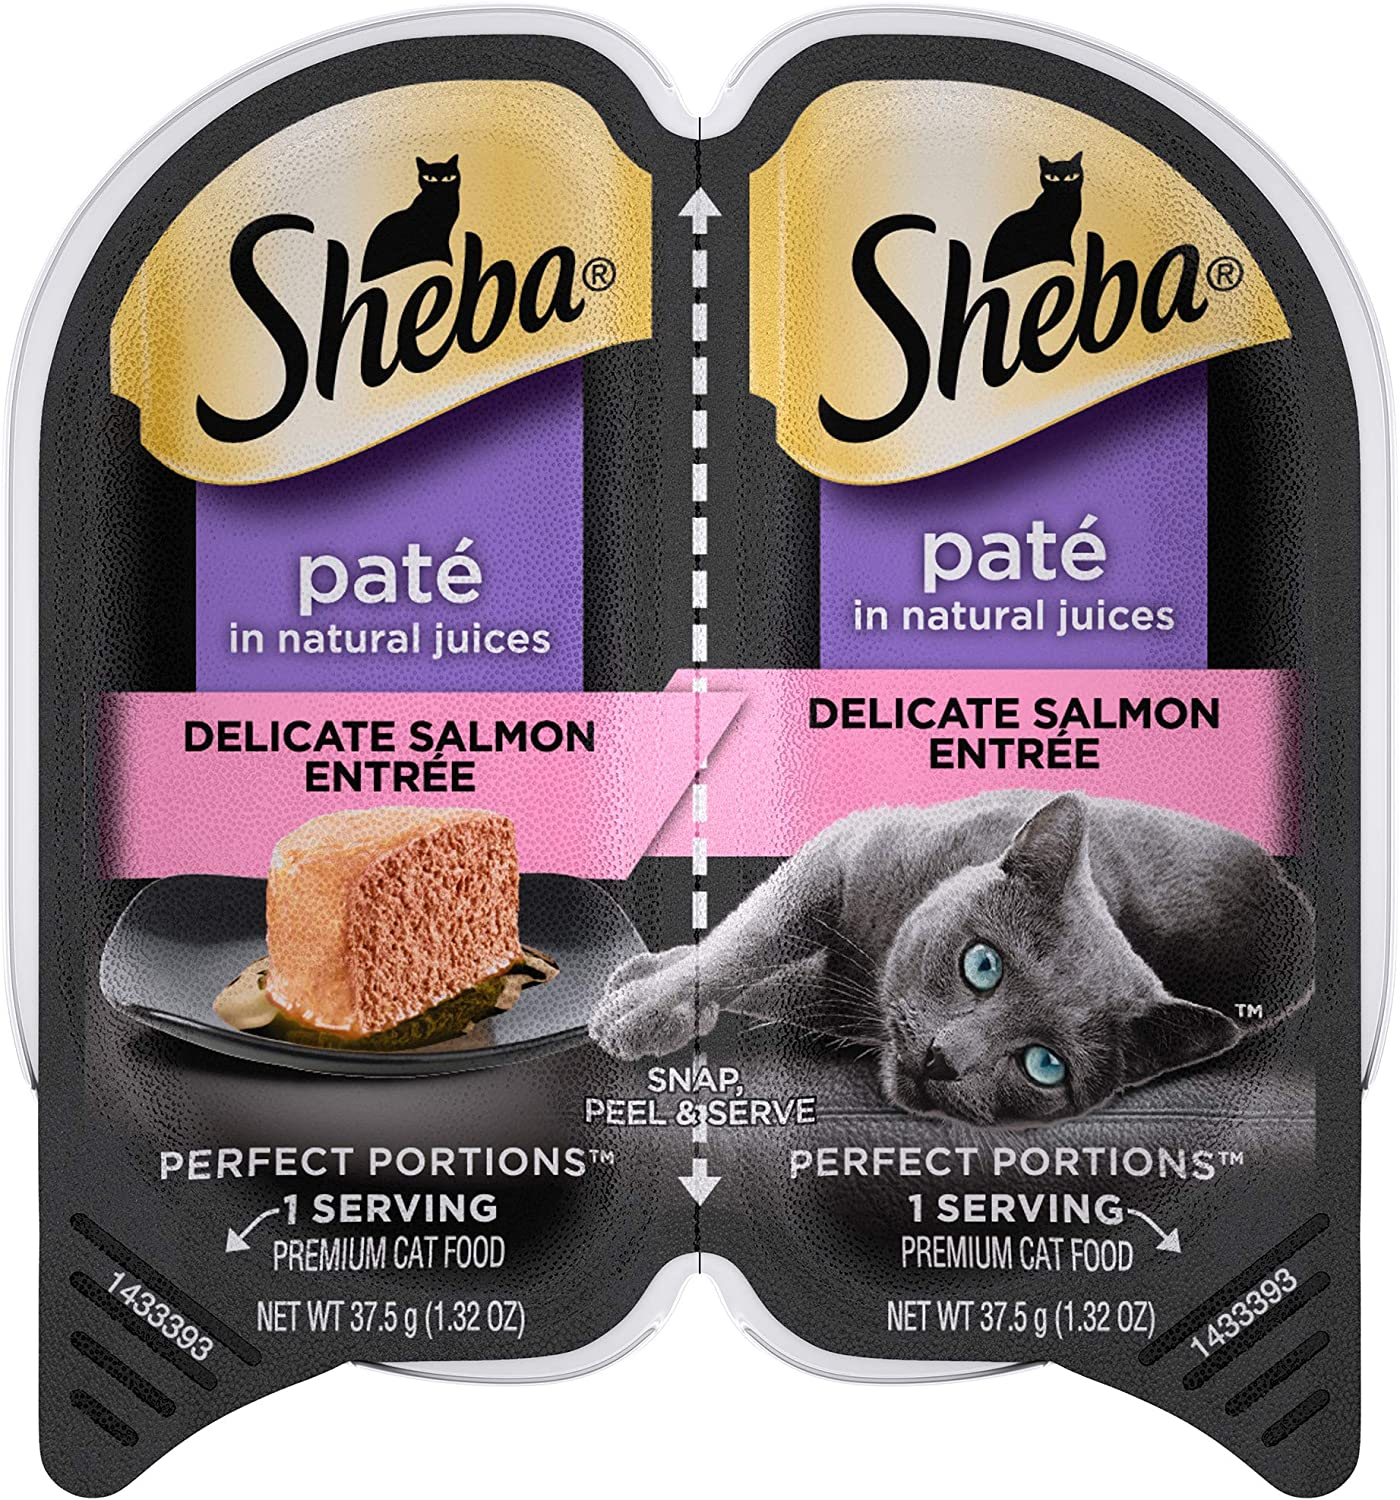 6. Sheba Perfect Portions Paté